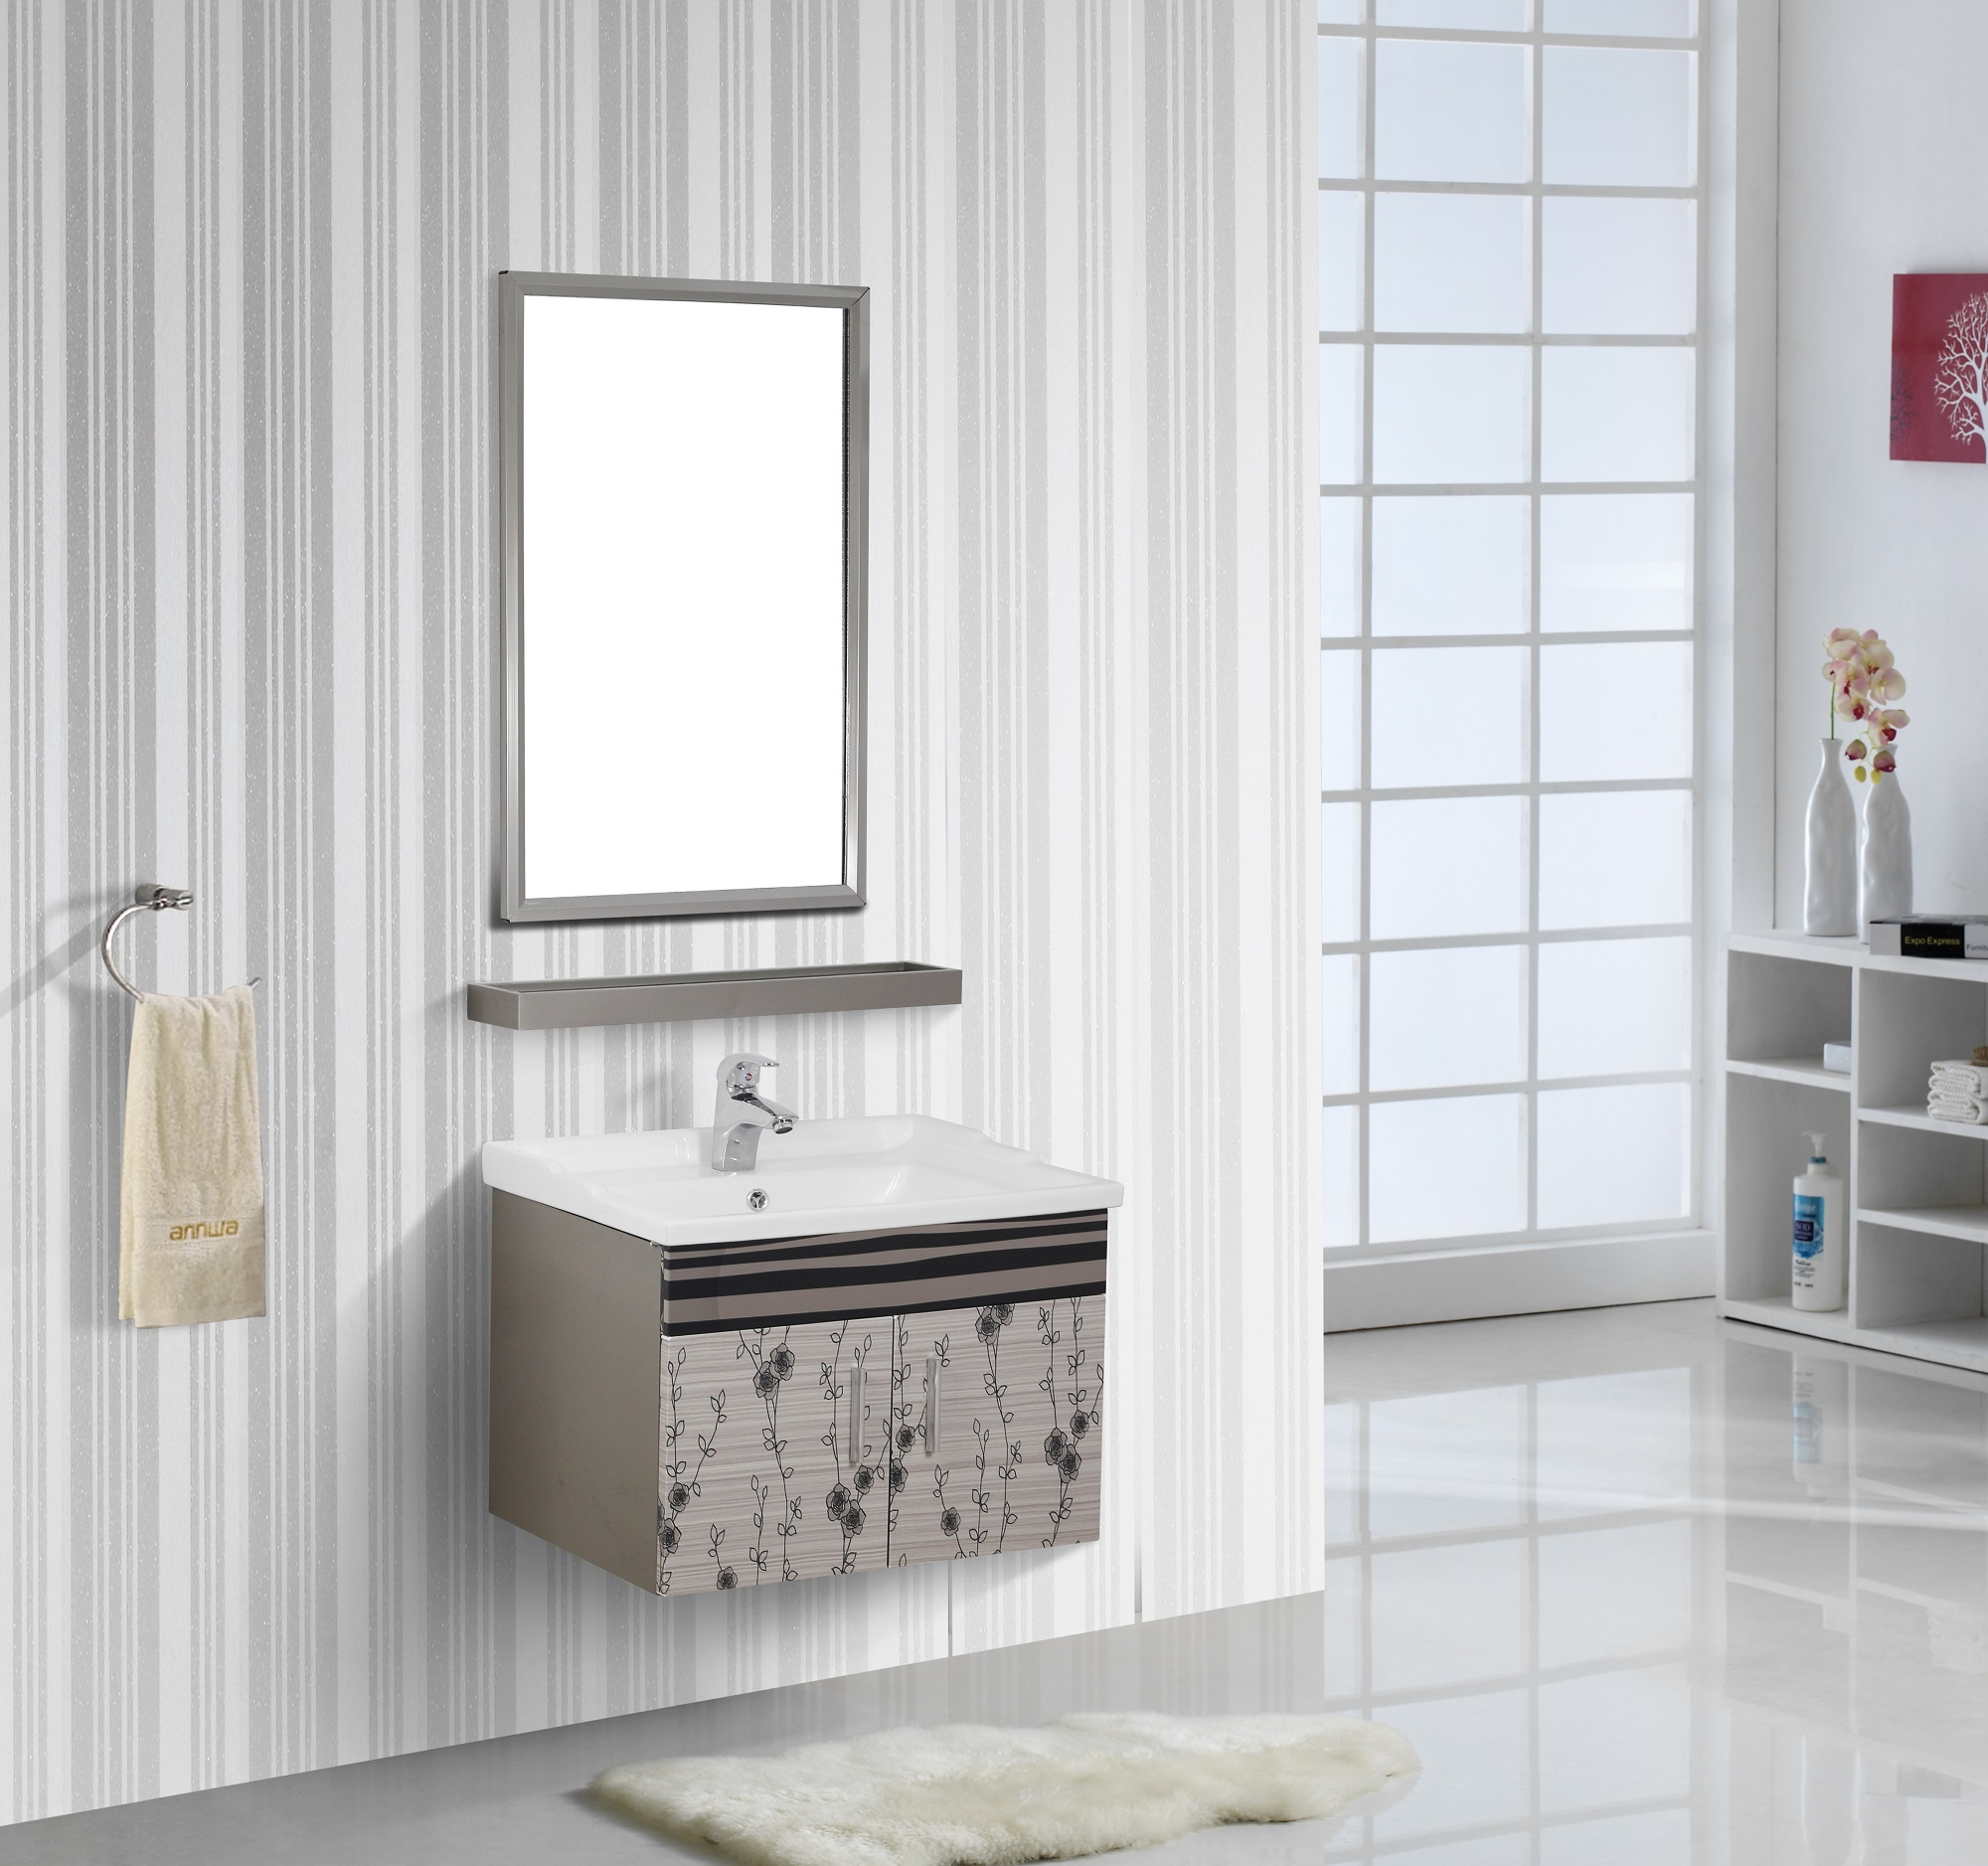 Important Things To Consider While Purchasing Bathroom